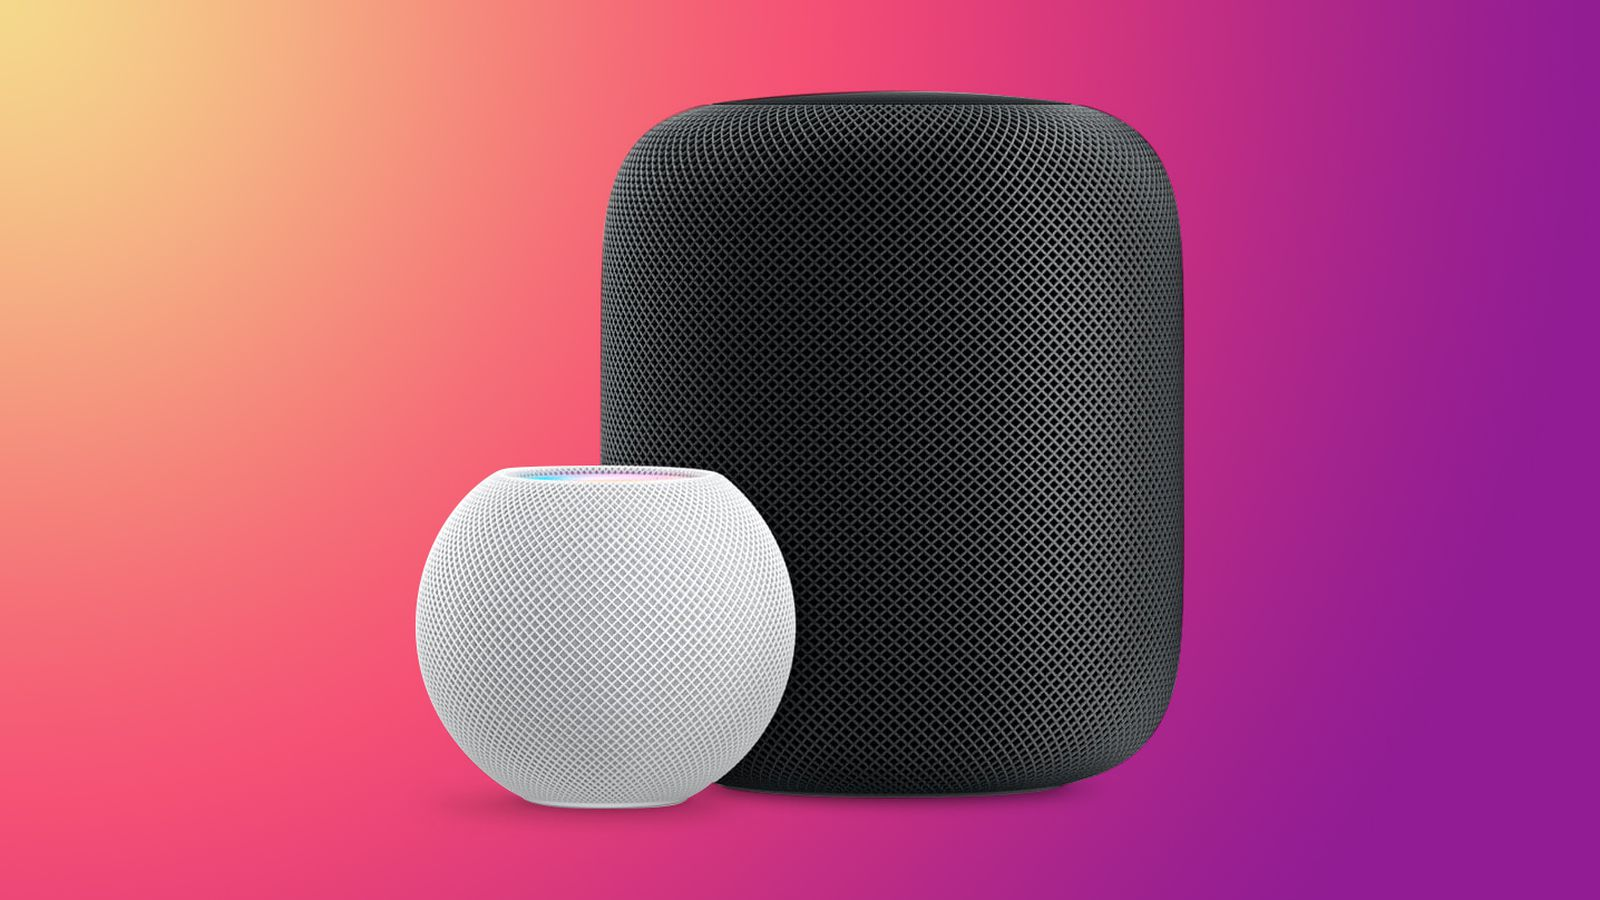 photo of Apple Discontinuing Full-Sized HomePod to Focus on HomePod Mini image